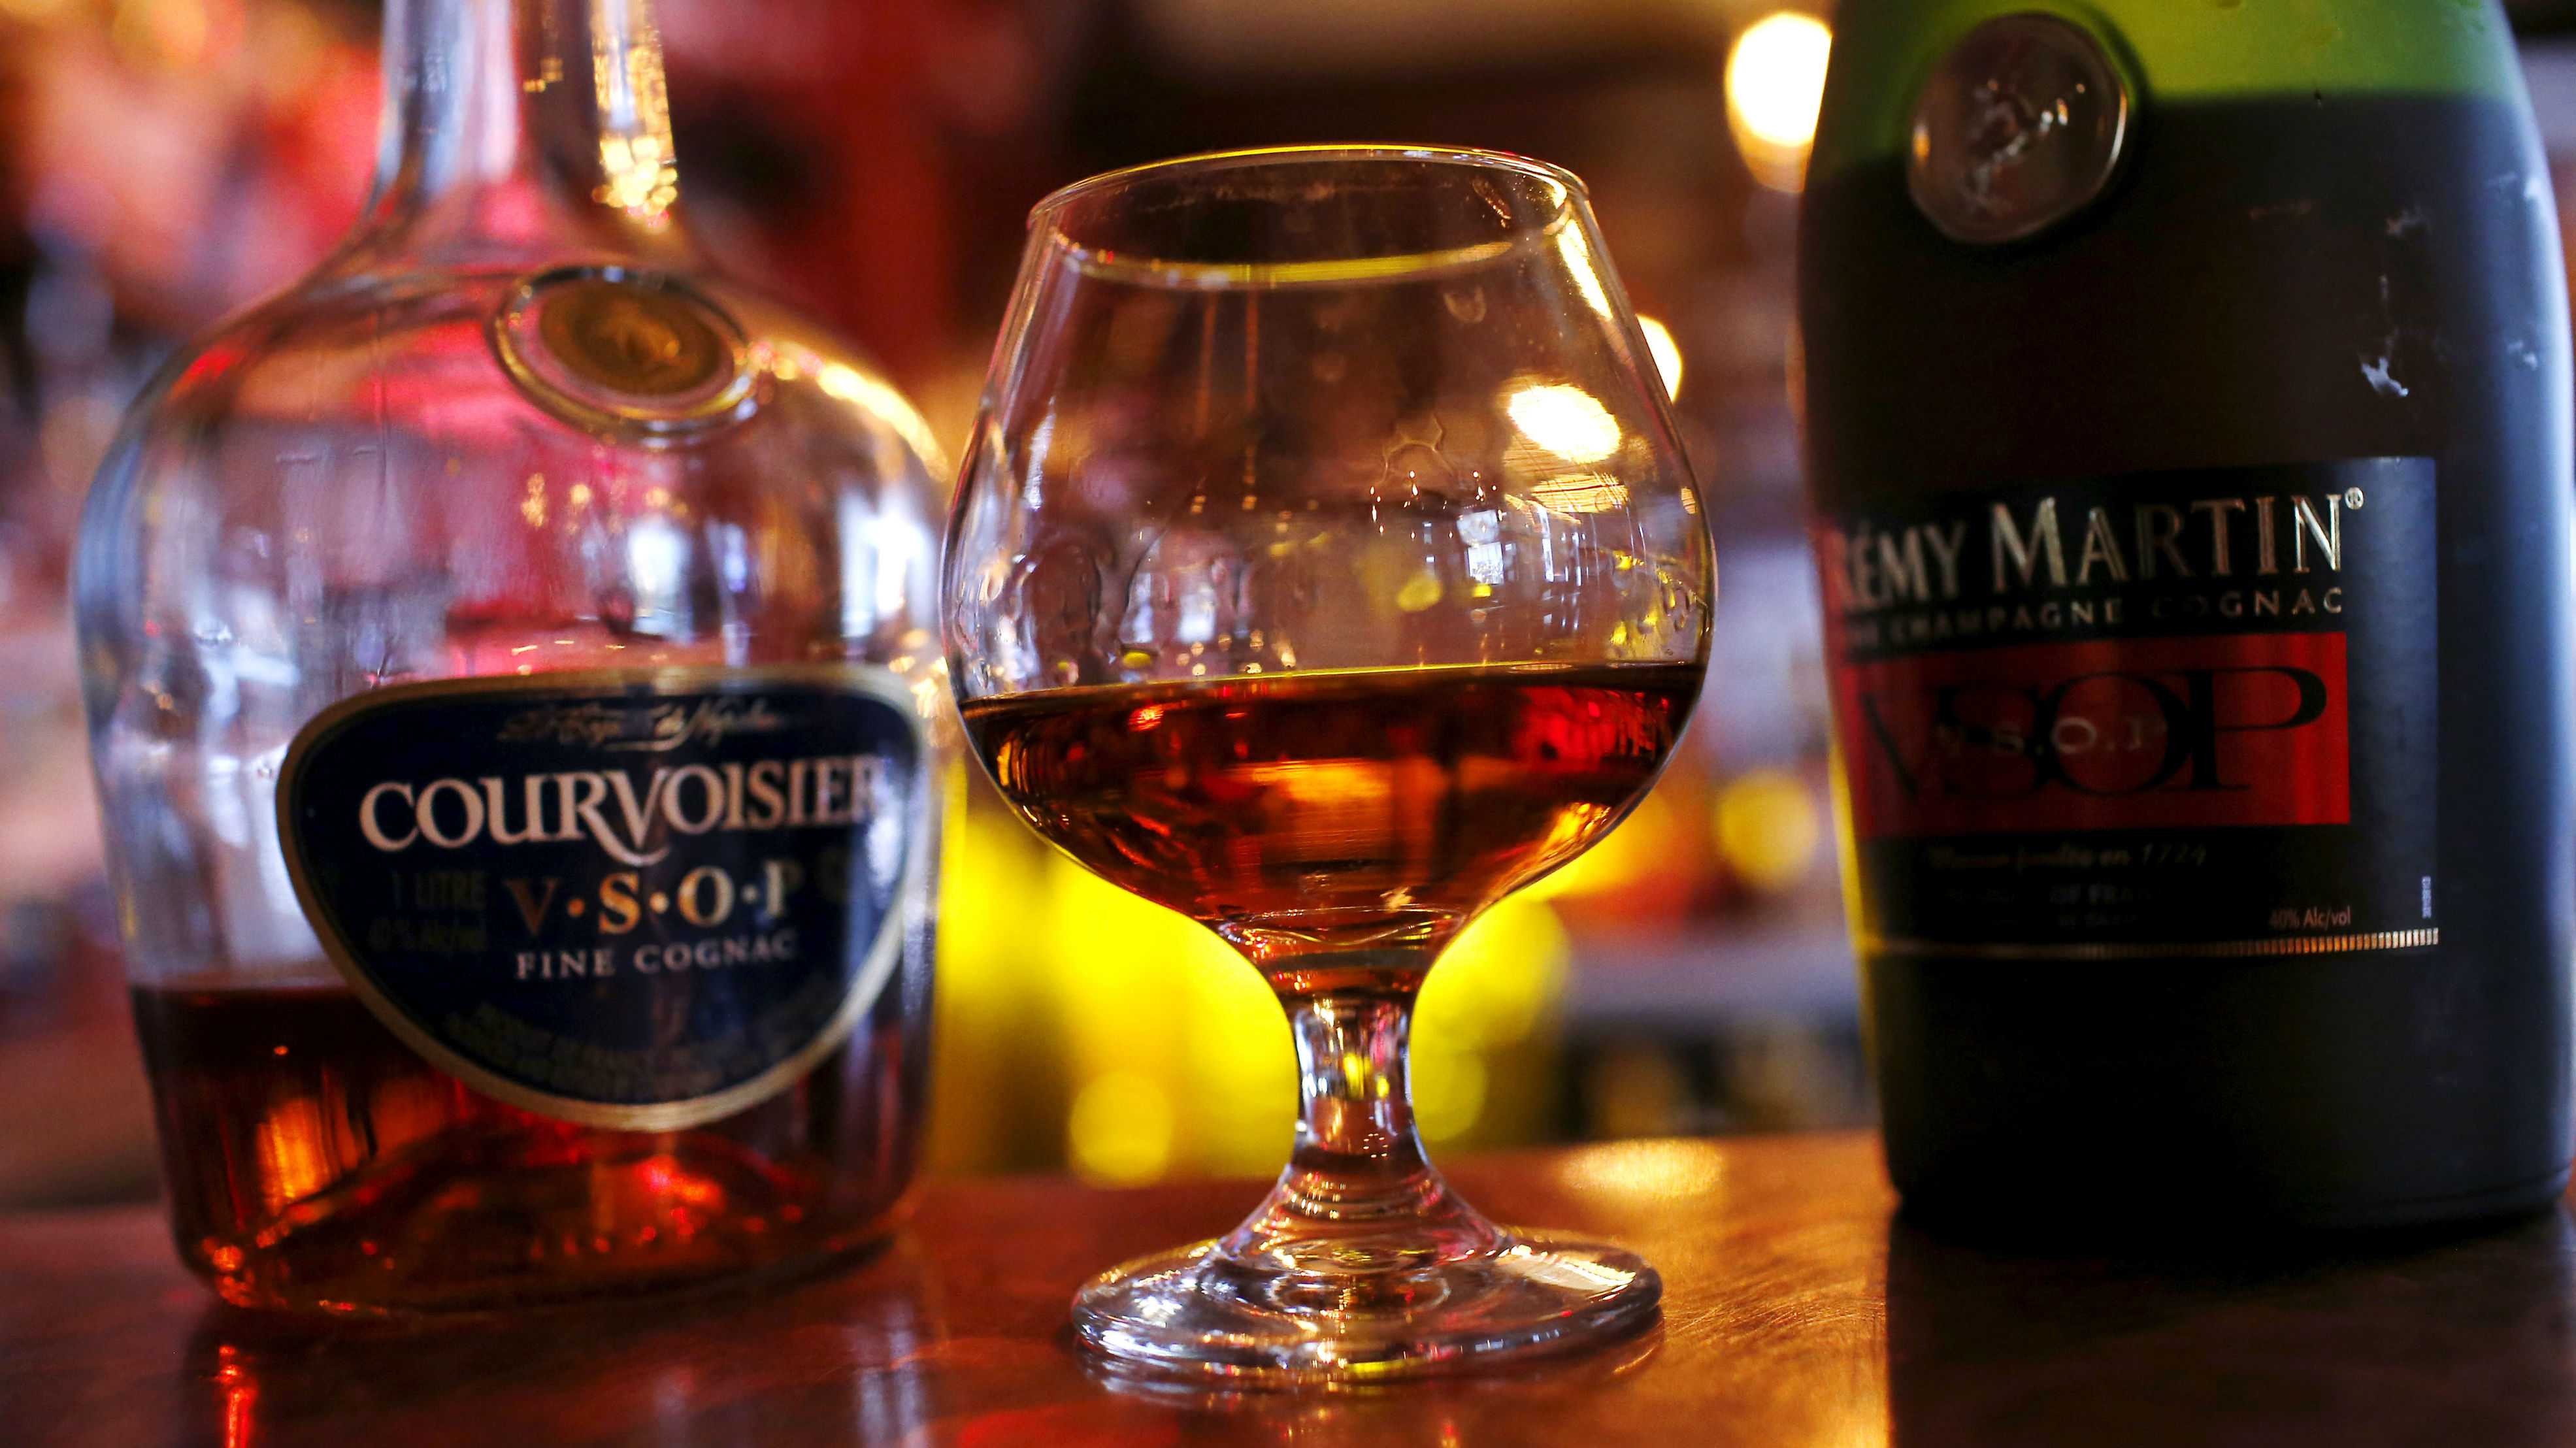 A glass of cognac is pictured on a bar in the Manhattan borough of New York City, November 13, 2015. France's centuries-old cognac houses are raising their bets on the U.S. market with new products and campaigns to broaden the drink's appeal beyond its African American stronghold. The big four producers -- LVMH Moet Hennessy, Remy Cointreau, Pernod Ricard and Beam Suntory -- have turned more of their attention to the U.S. following a drop in sales in China after an anti-graft campaign. To match story USA-COGNAC Picture taken November 13, 2015.